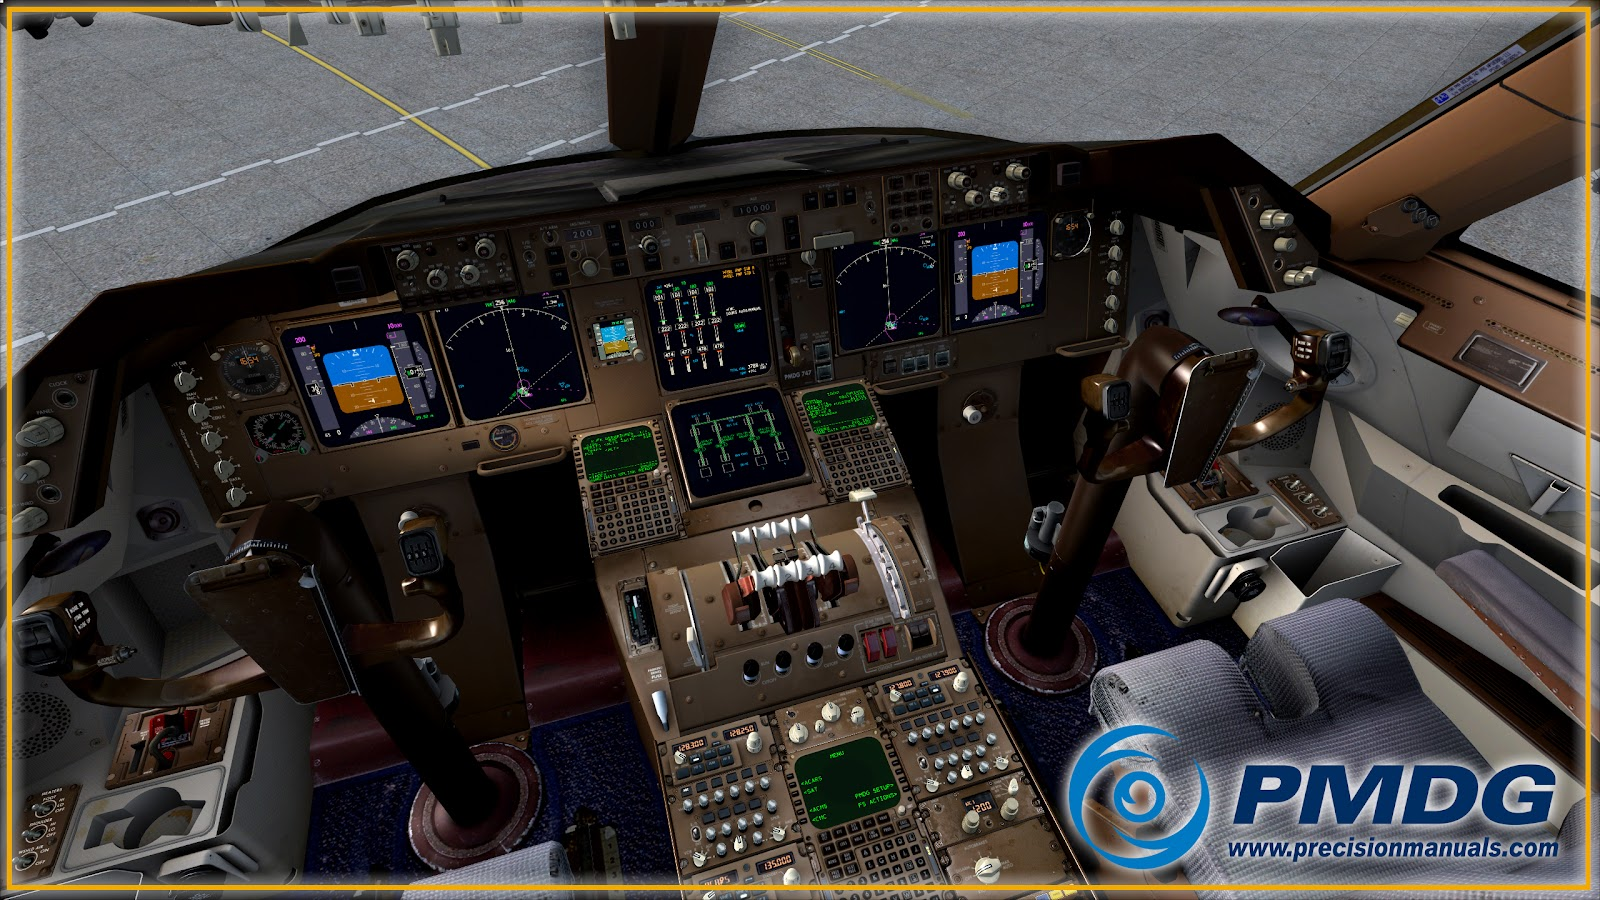 PMDG_747-400_Top_Down_VC_View.jpg